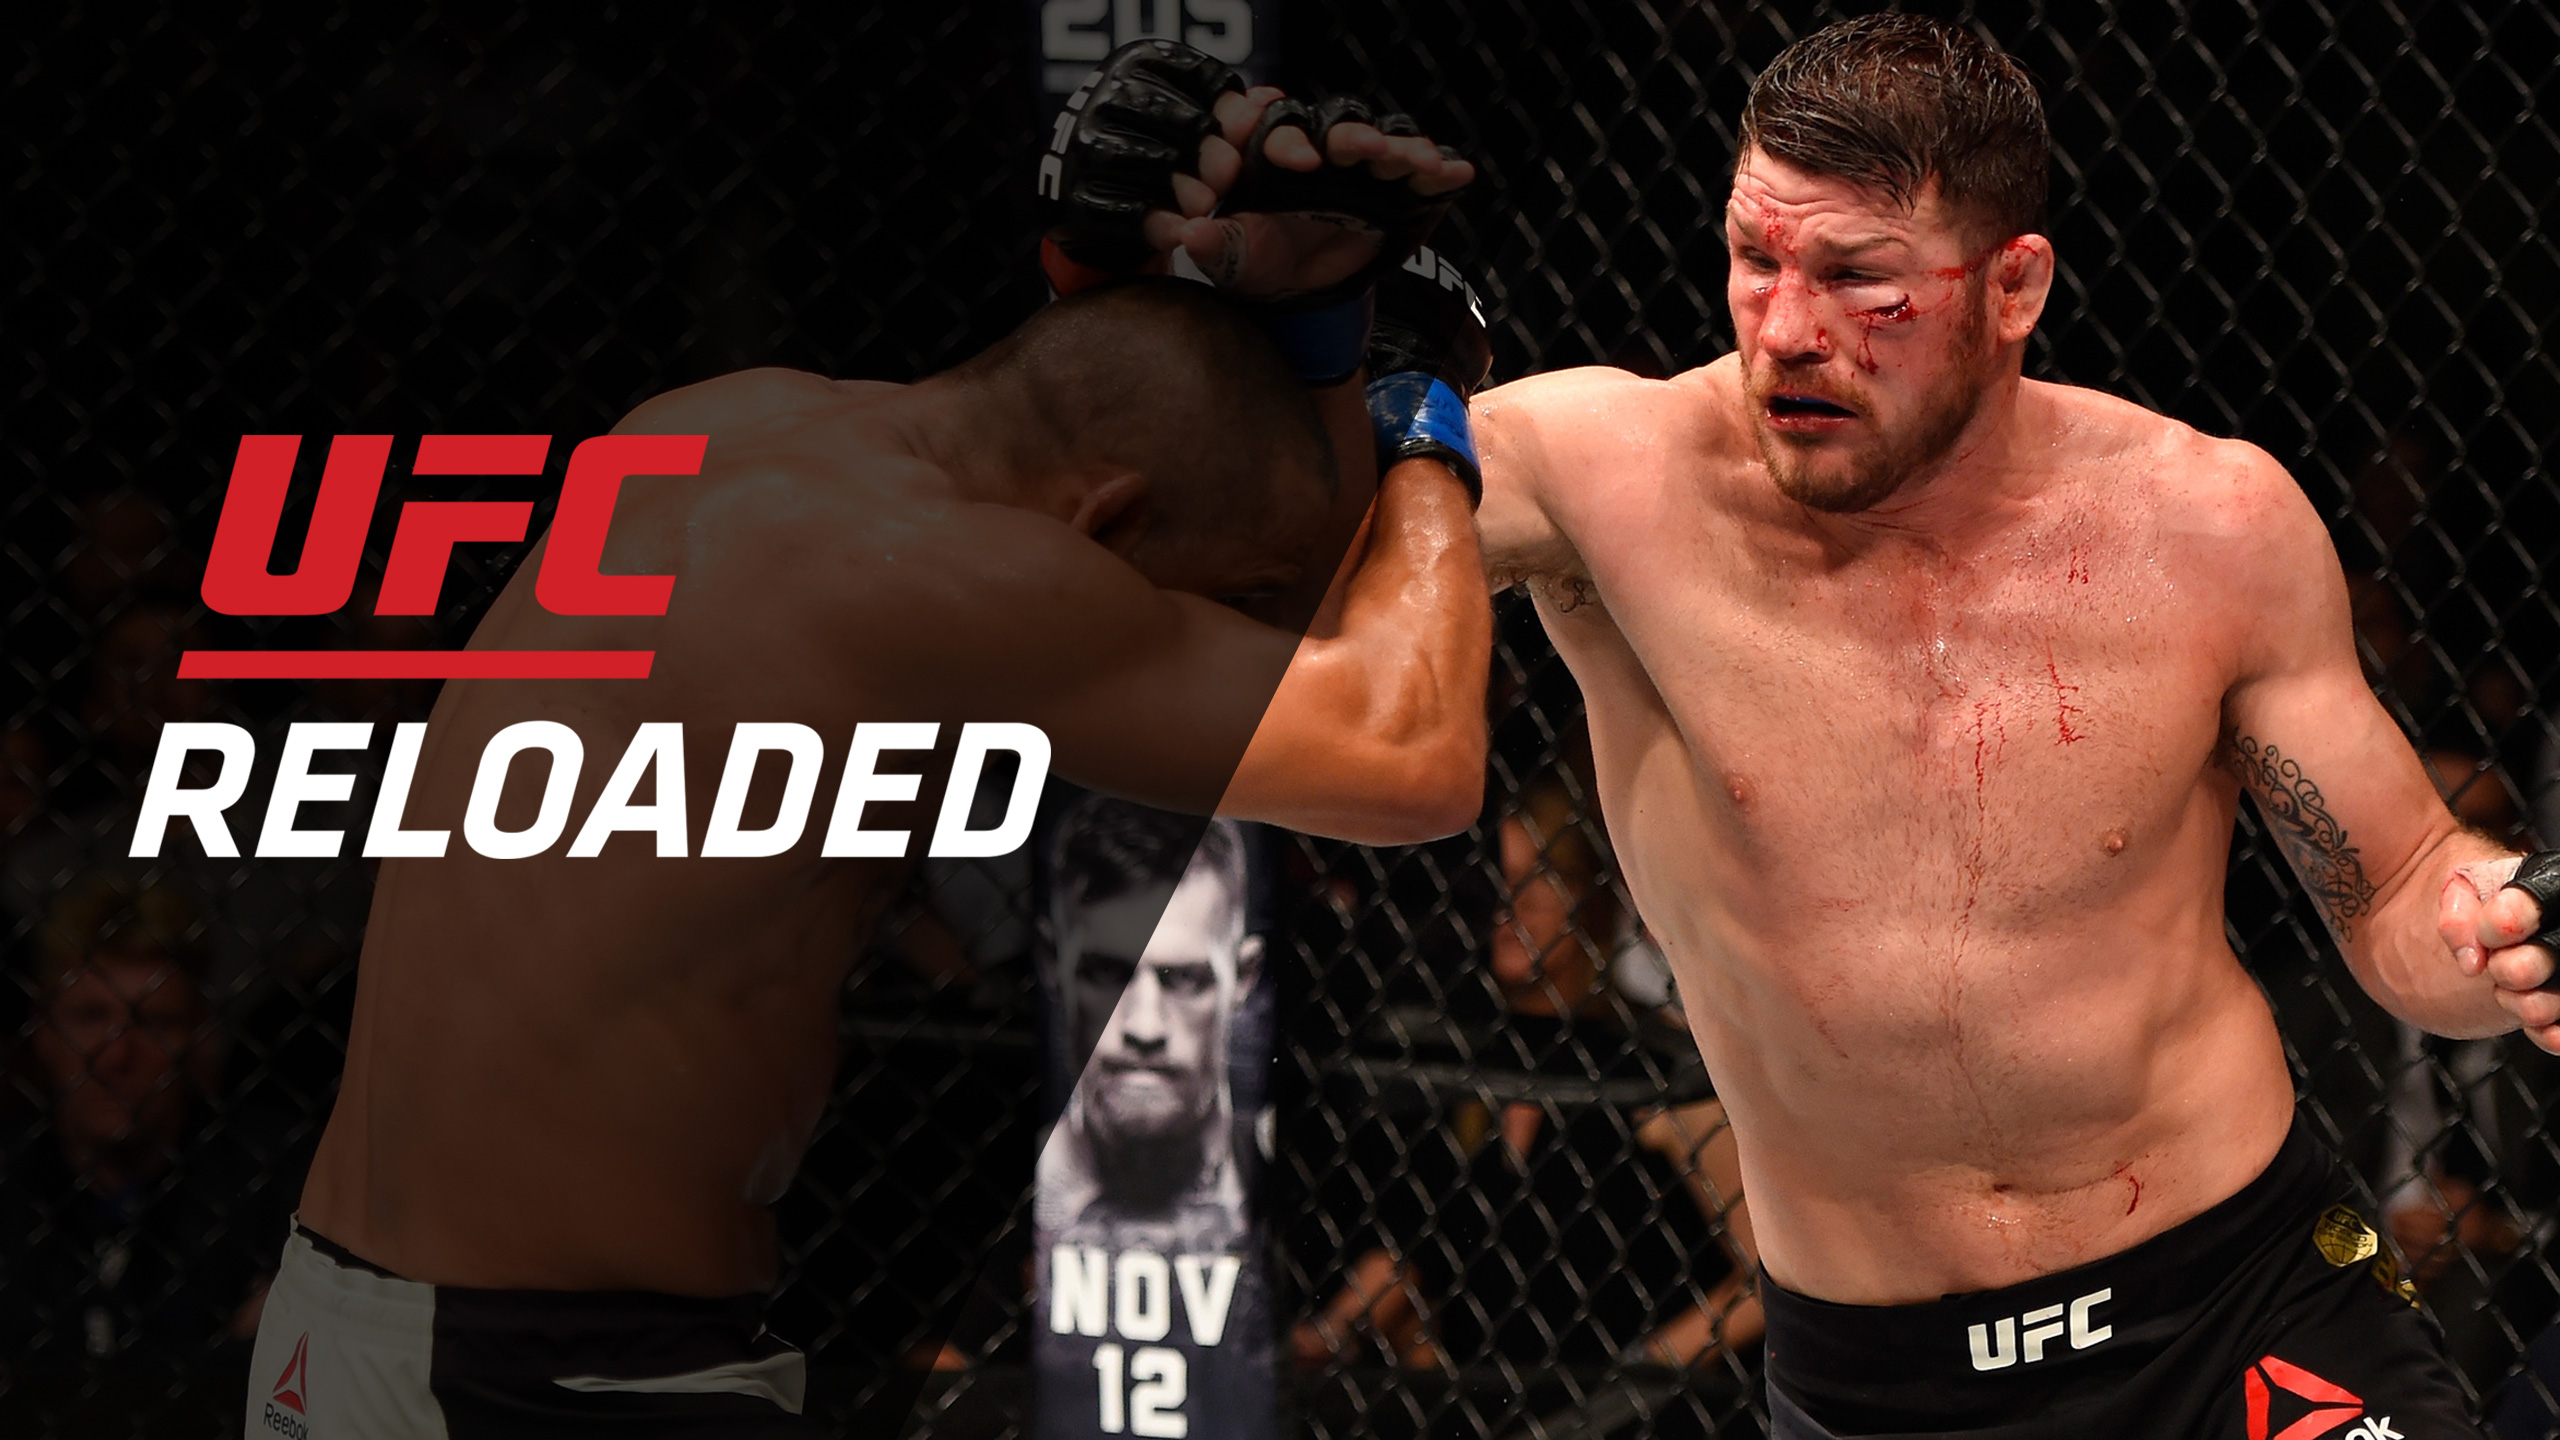 UFC Reloaded: 204: Bisping vs. Henderson 2